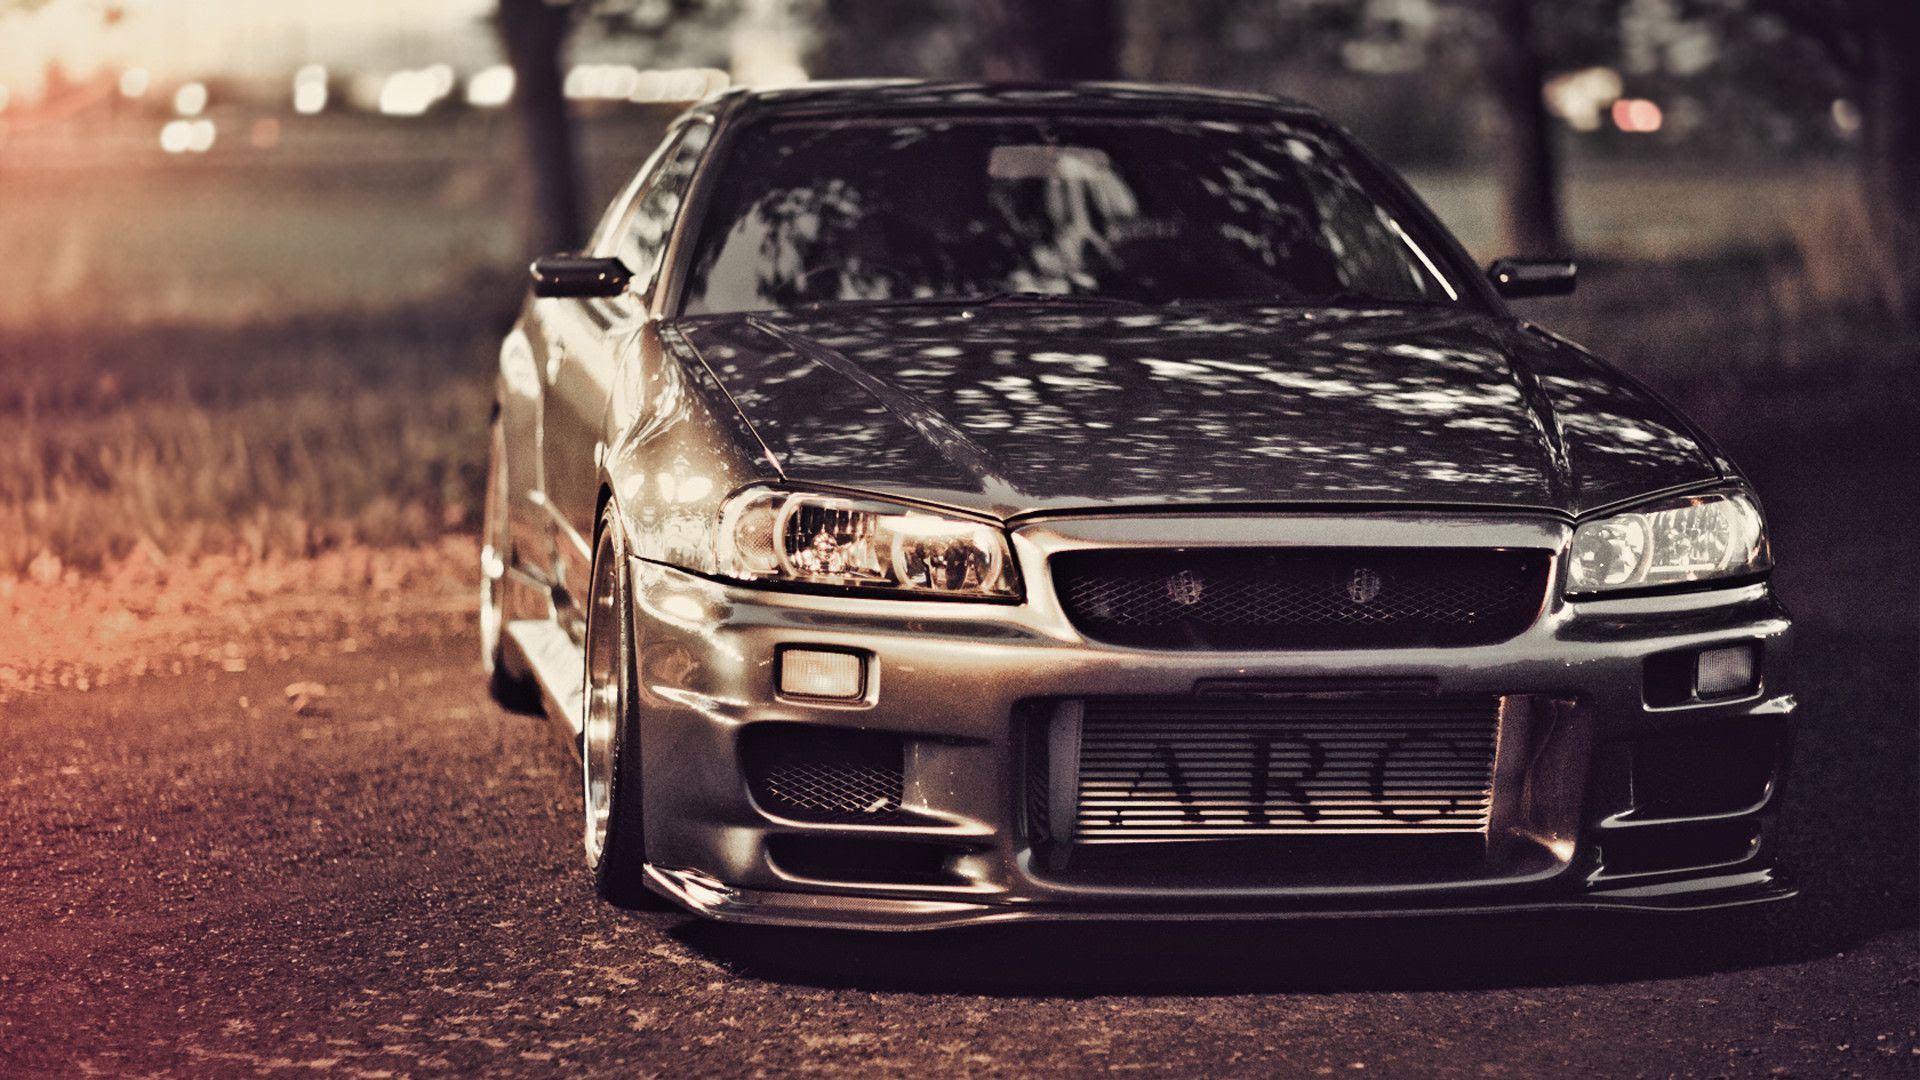 Wallpaper Nissan Skyline Sf Wallpaper